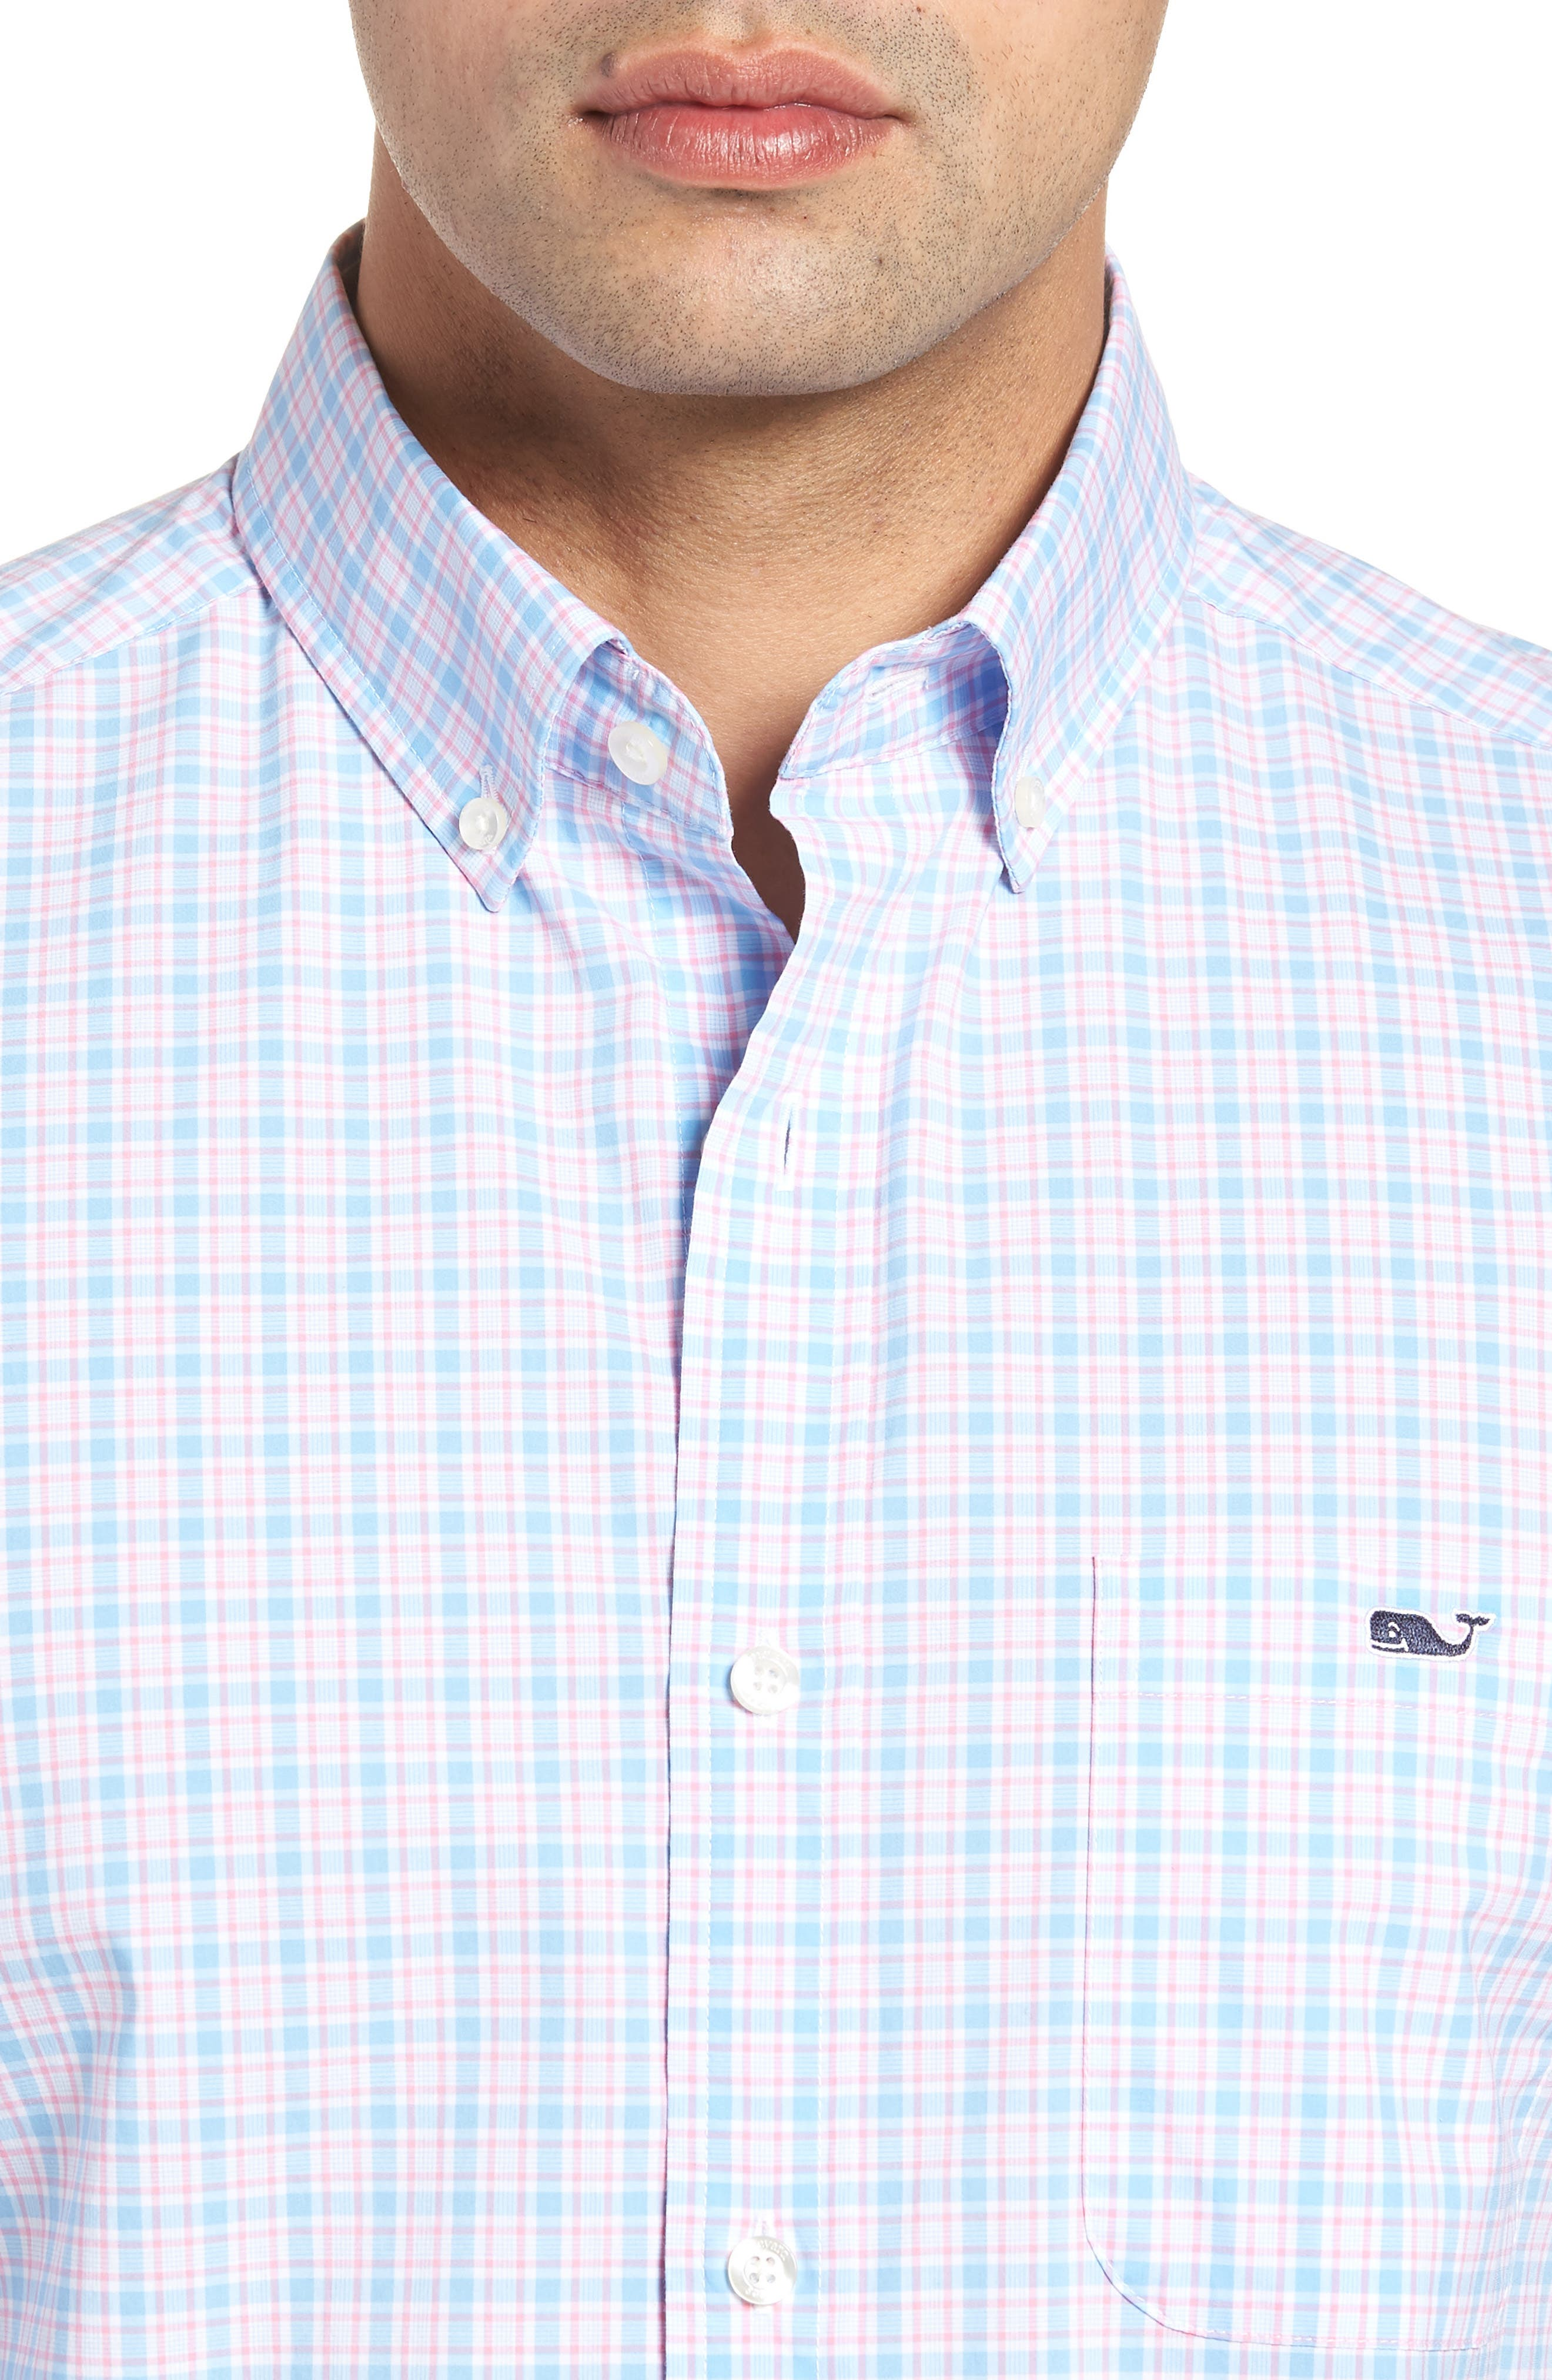 Captain Lyford Classic Fit Stretch Check Sport Shirt,                             Alternate thumbnail 4, color,                             484